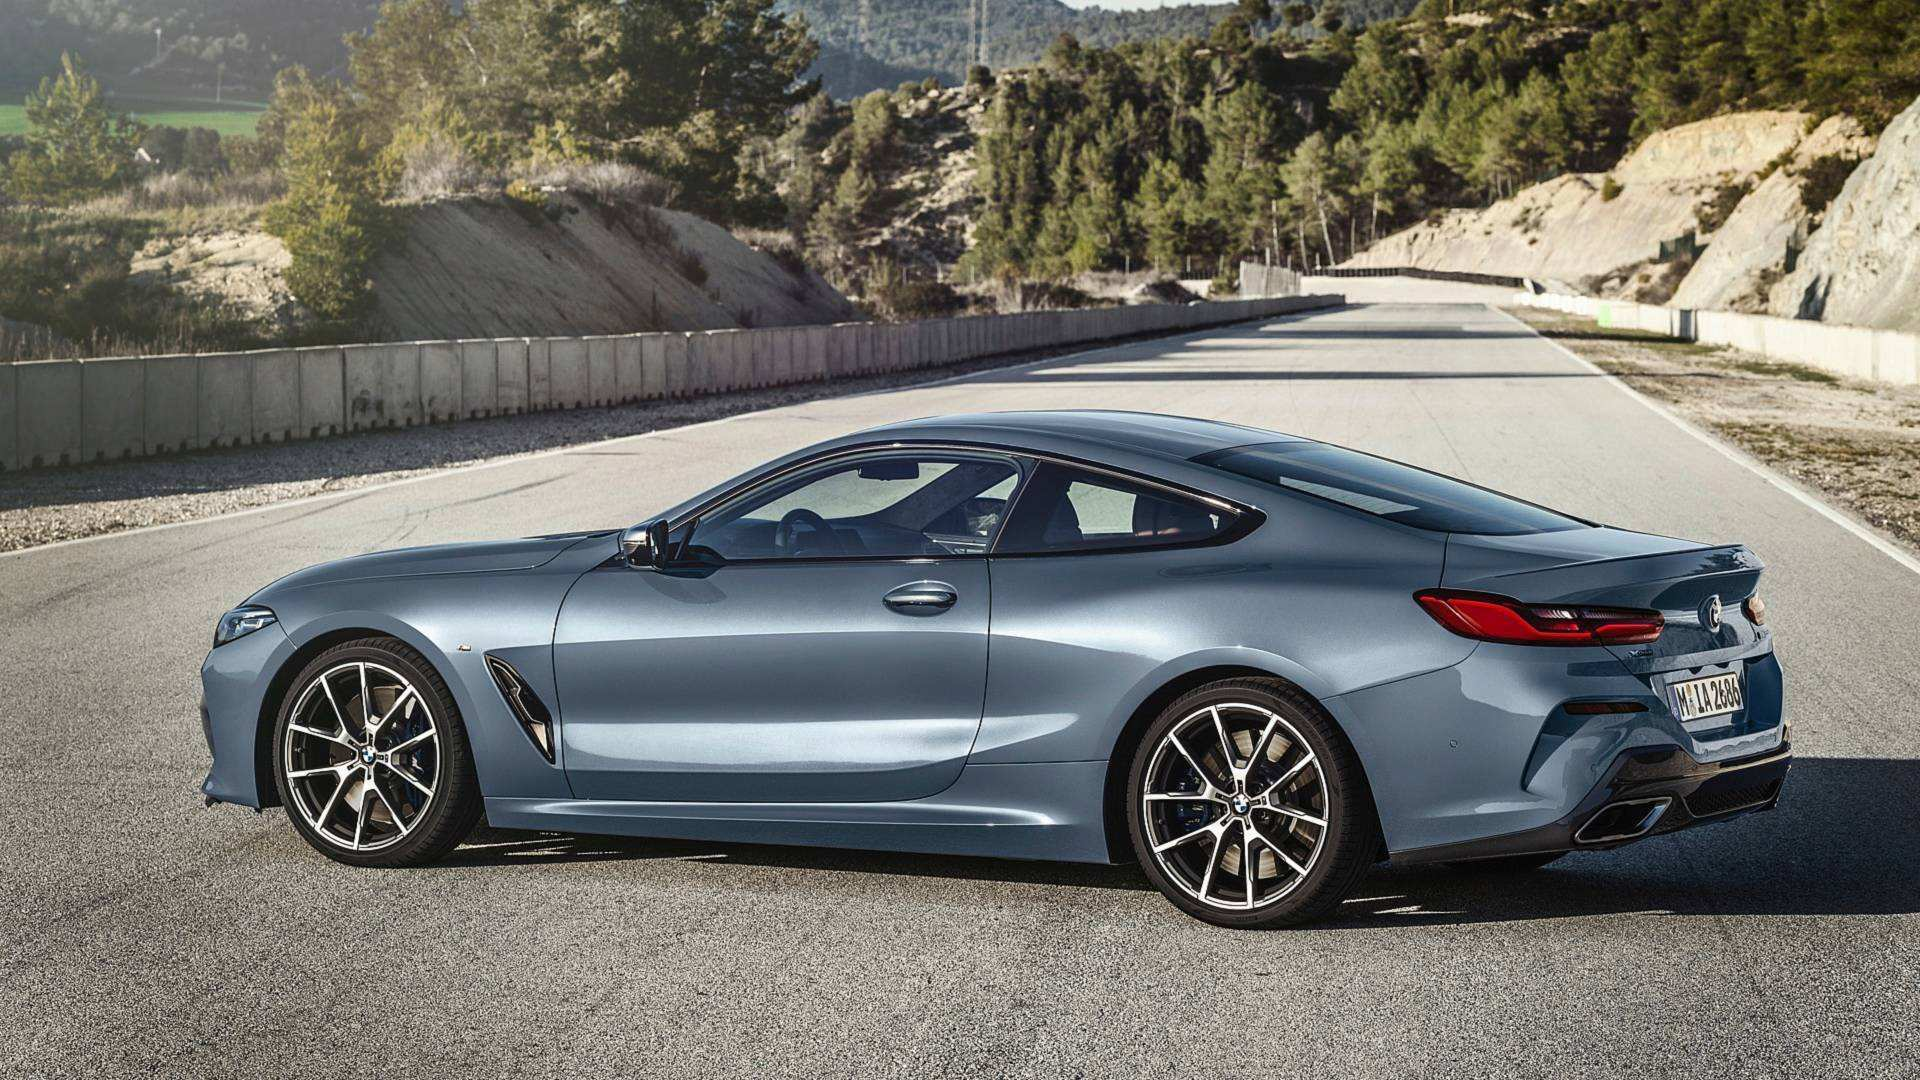 62 Gallery of 2019 Bmw 9 Series Spesification by 2019 Bmw 9 Series